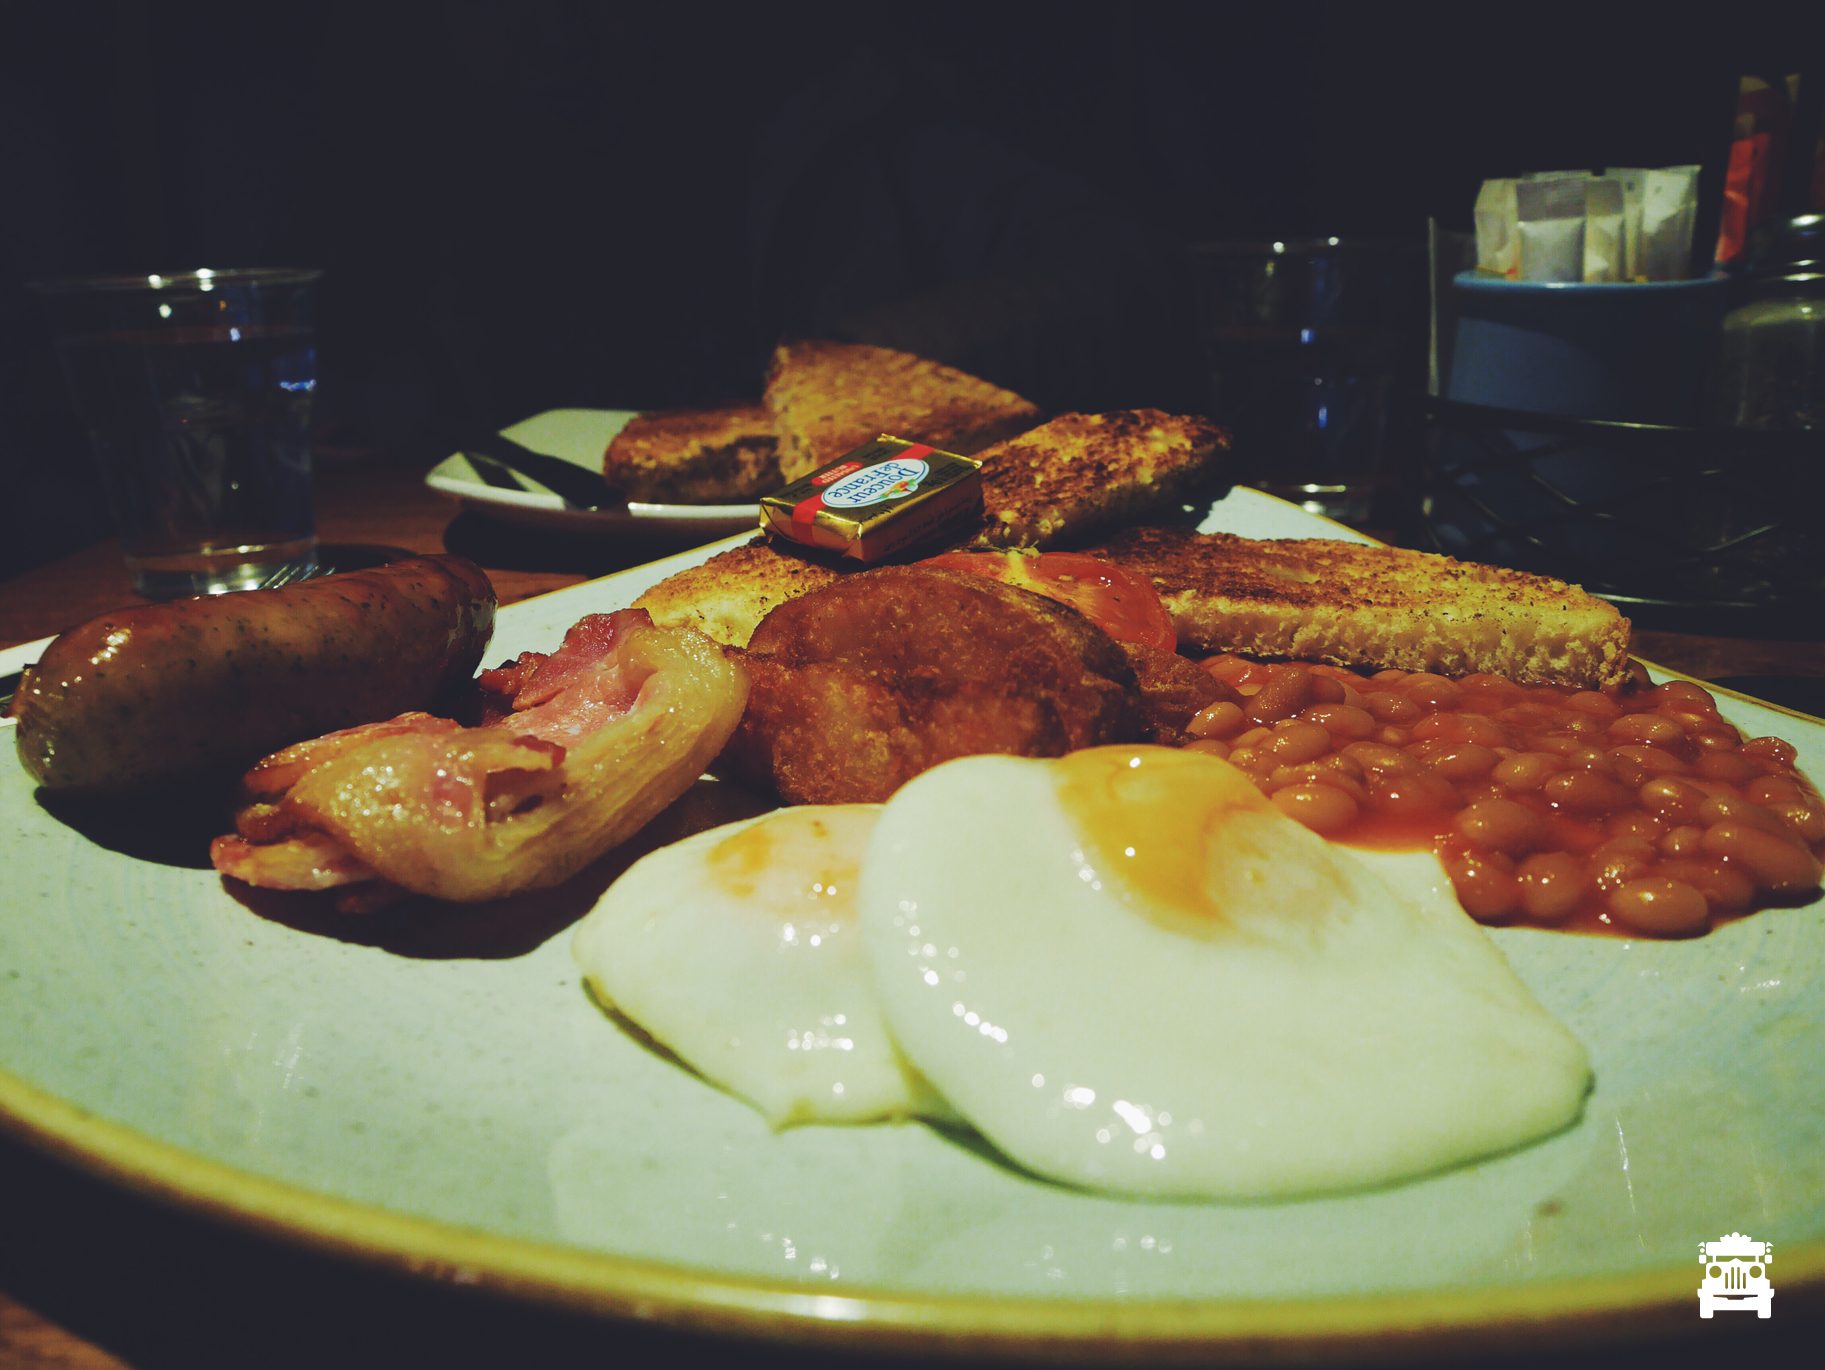 Big breakfast for me of course